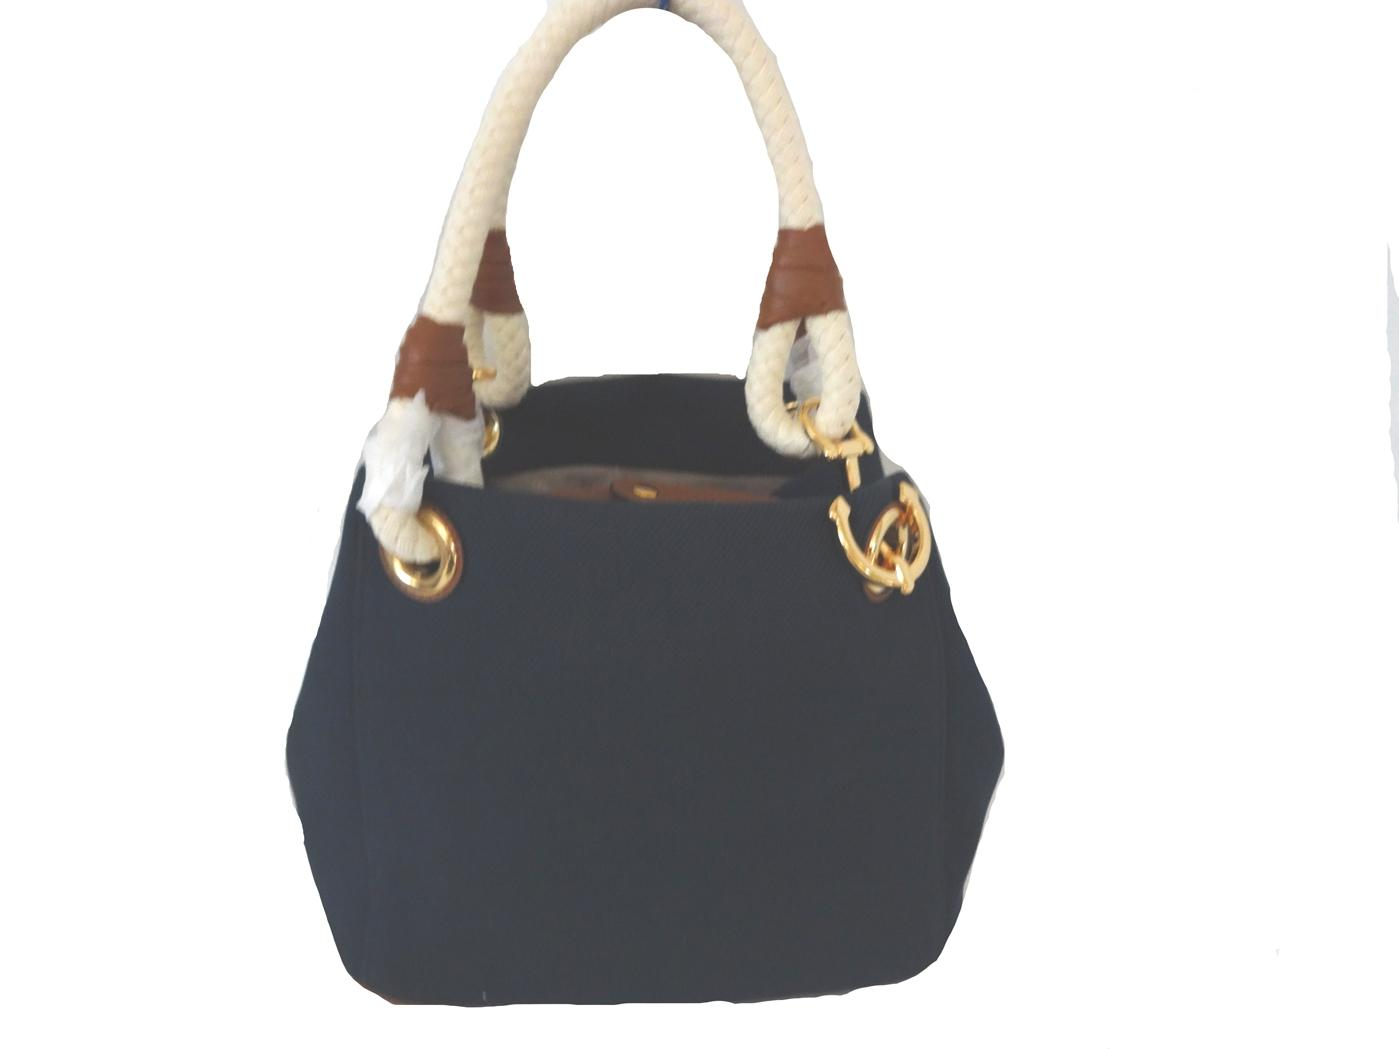 588c6ff9e956 ... cheap michael kors marina medium satchel grab navy canvas tote tradesy  bd0d8 22b07